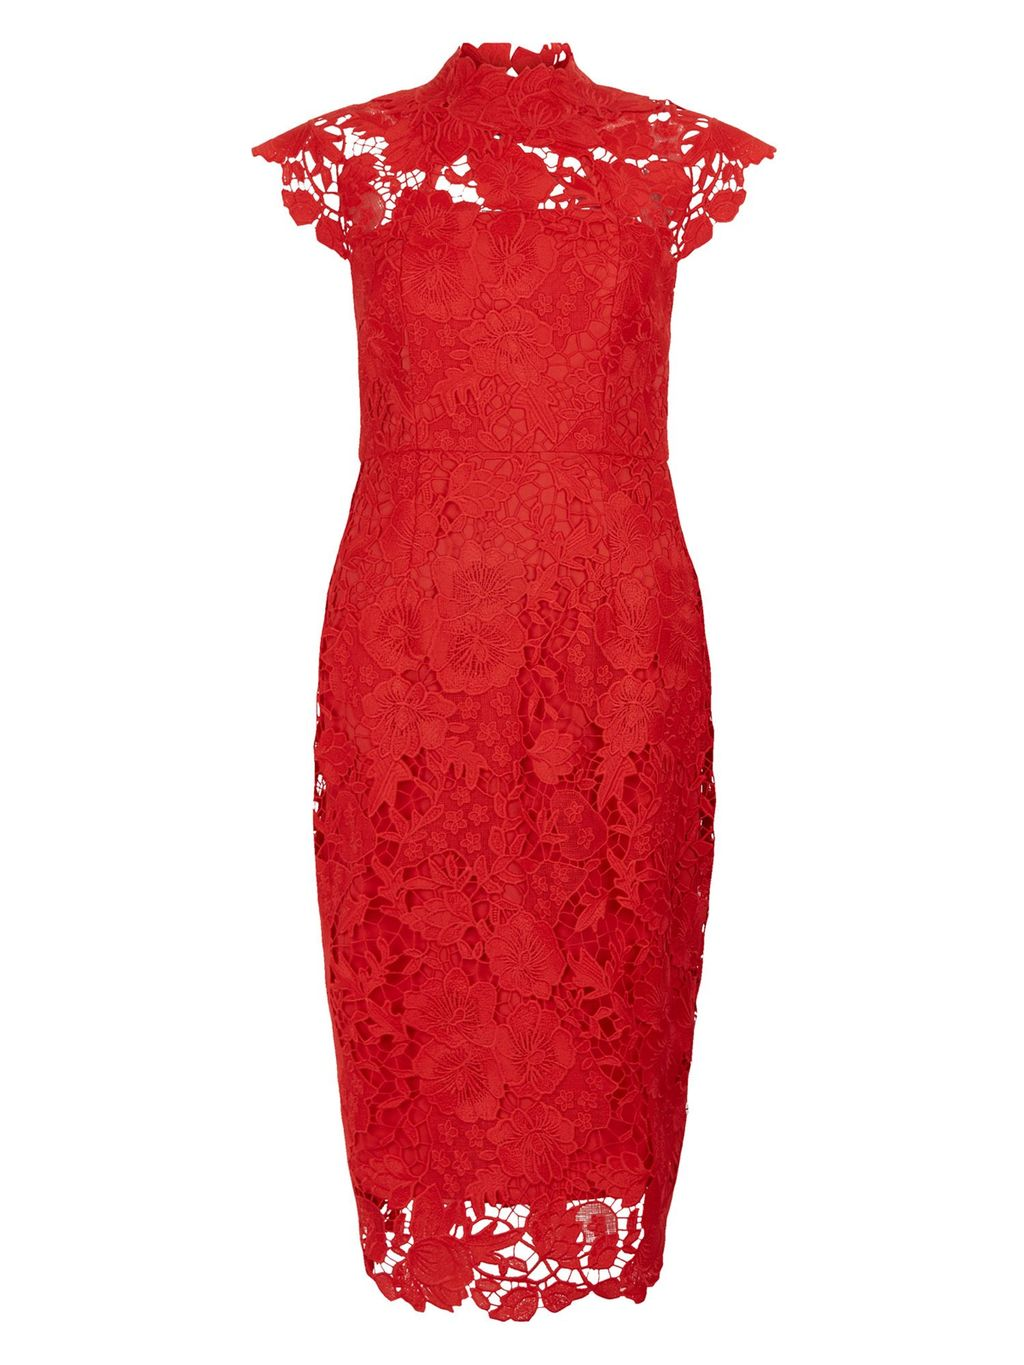 Audrey Lace Dress, Red - style: shift; sleeve style: capped; neckline: high neck; bust detail: sheer at bust; predominant colour: true red; occasions: evening; length: on the knee; fit: body skimming; fibres: polyester/polyamide - 100%; sleeve length: short sleeve; texture group: lace; pattern type: fabric; pattern size: standard; pattern: patterned/print; season: a/w 2016; wardrobe: event